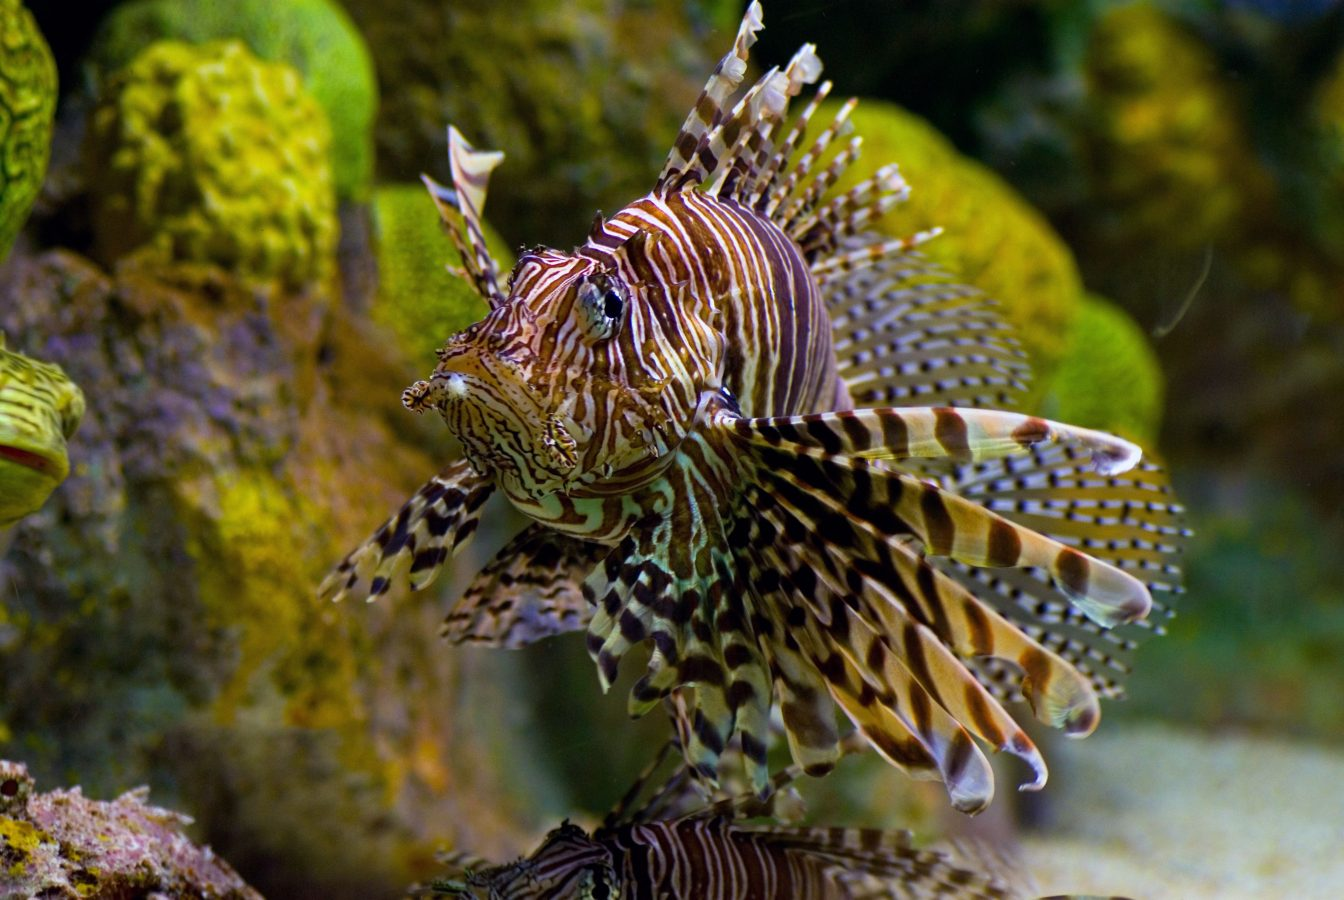 Lion fish swims through exhibit